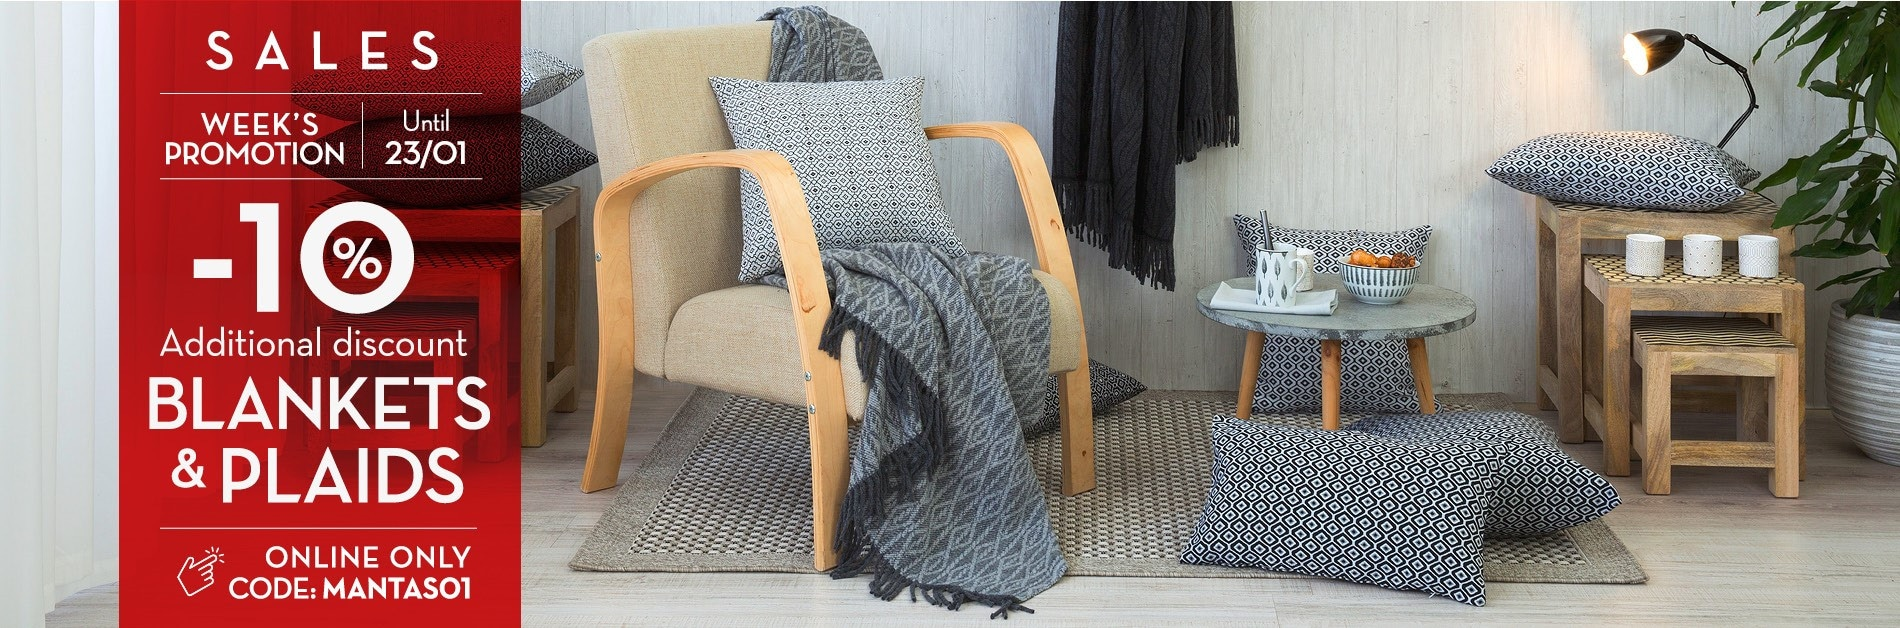 Get an EXTRA 10% OFF - blankets & plaids orders